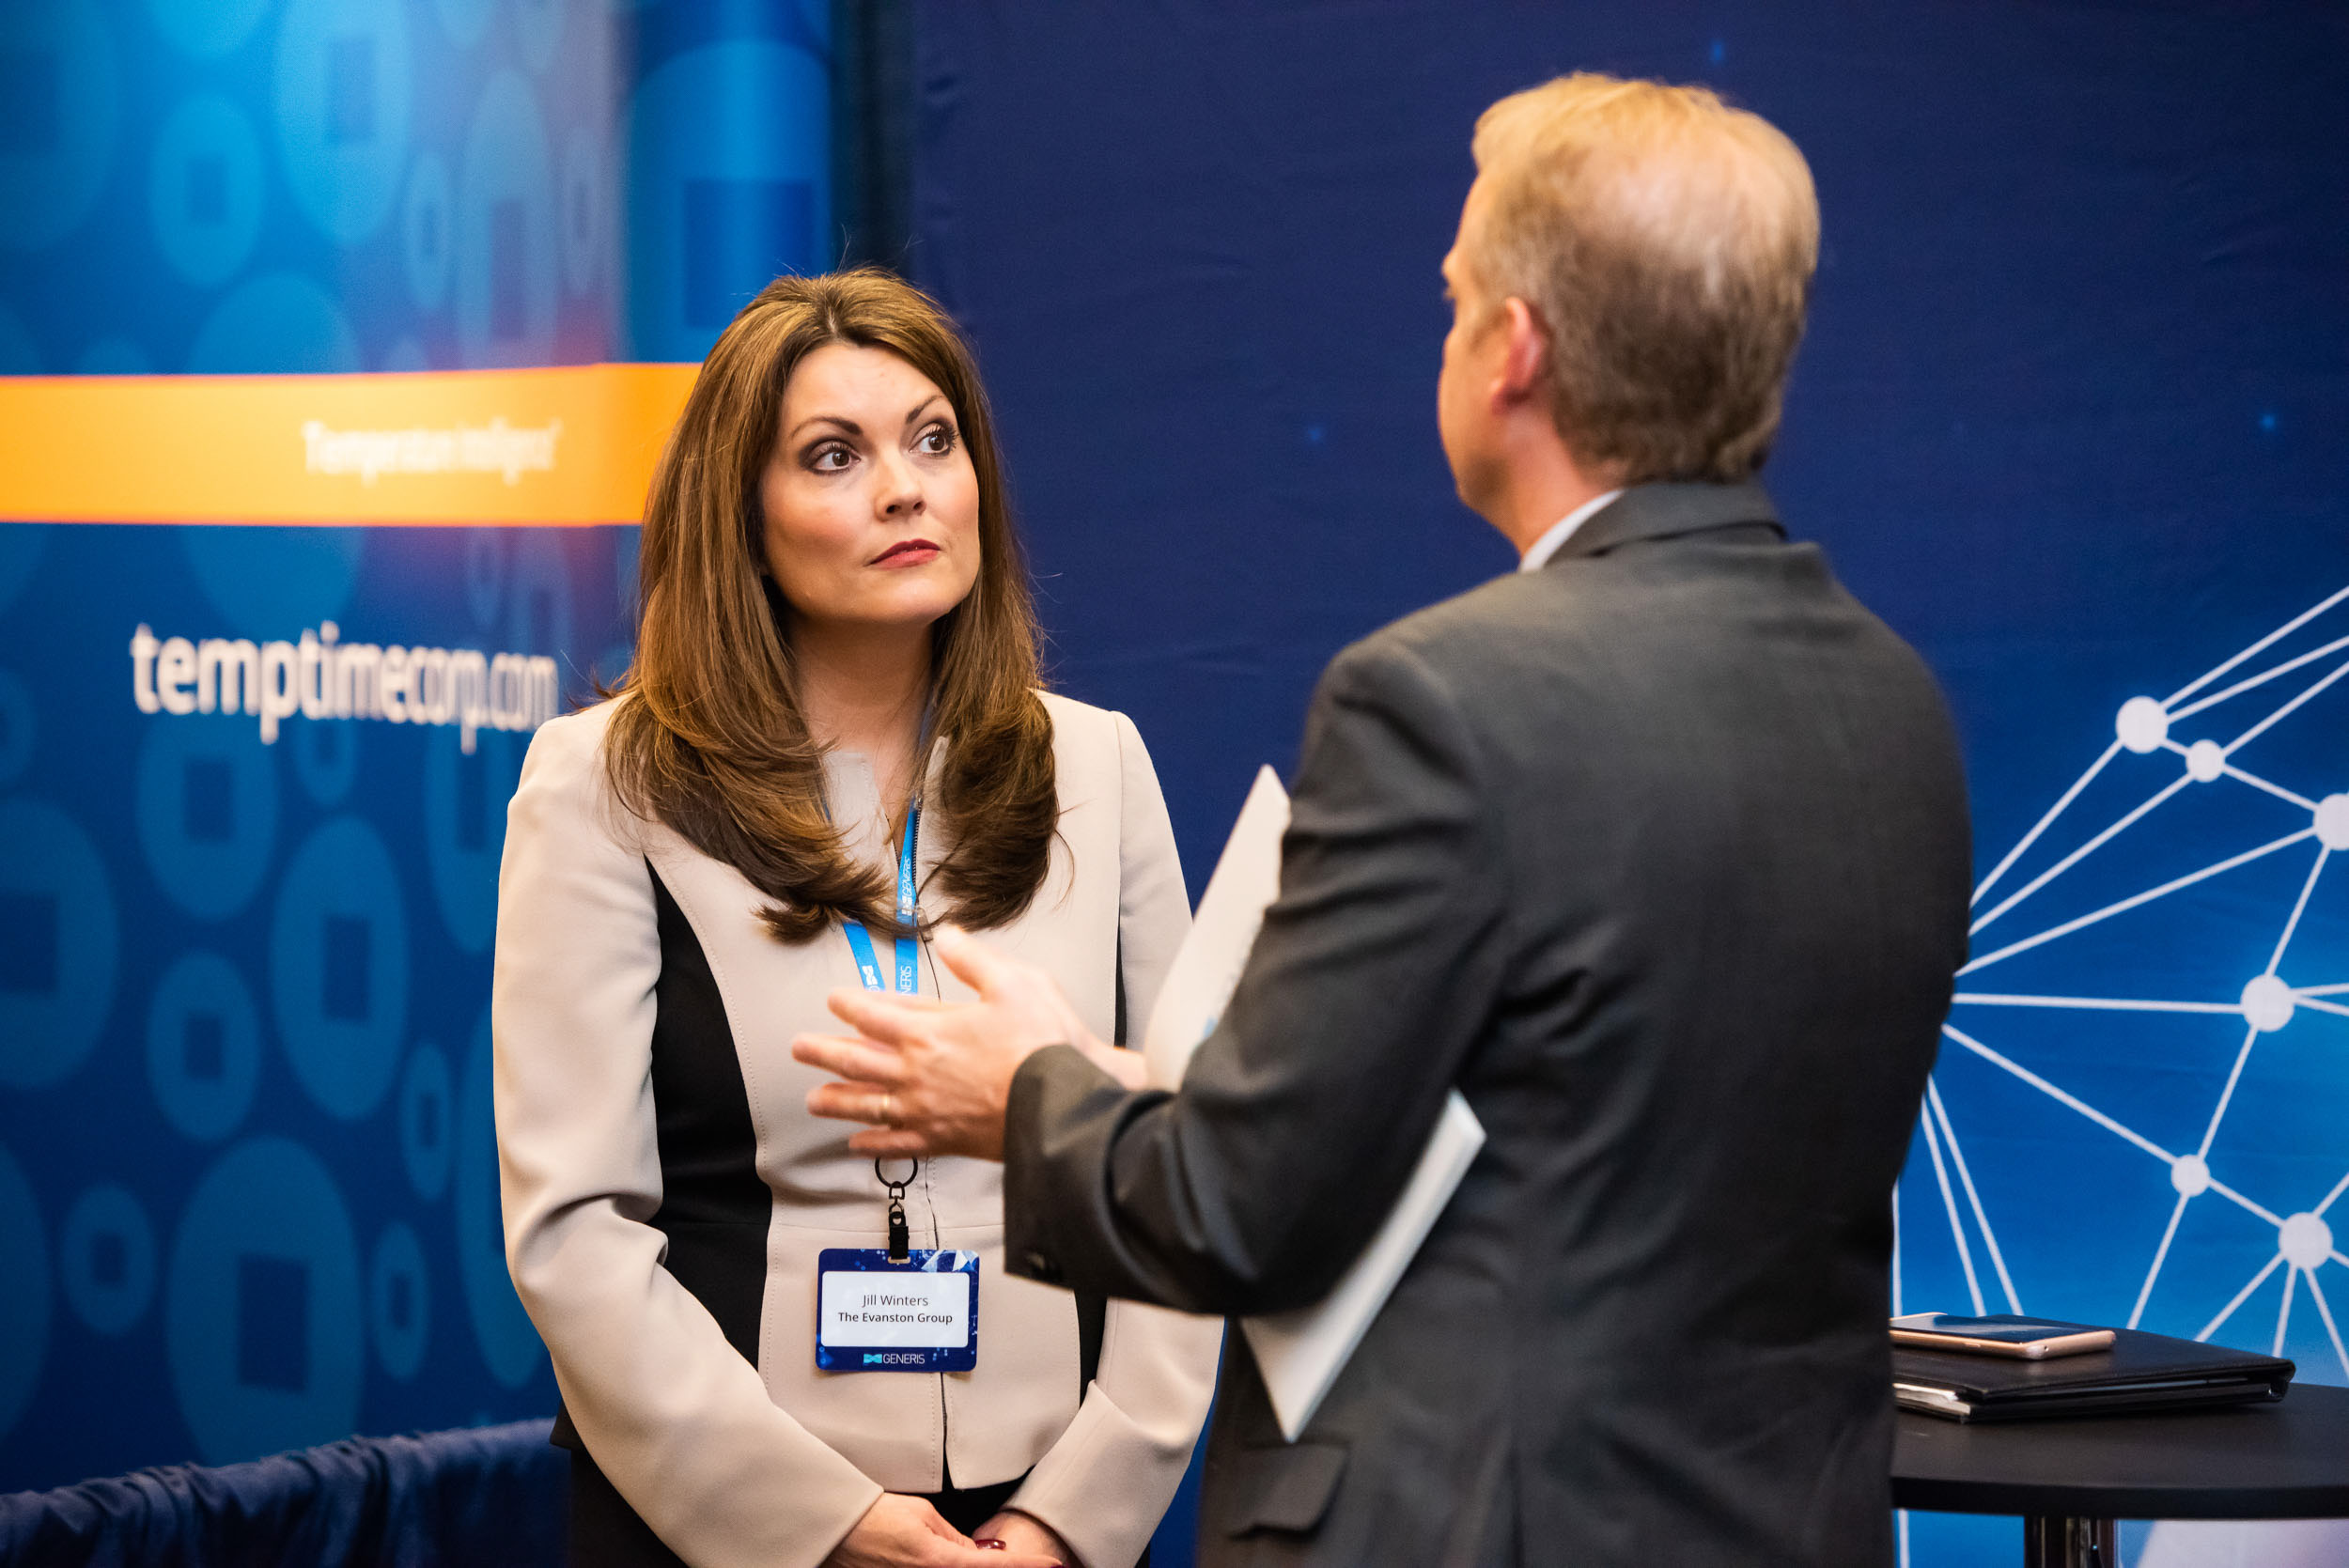 181024 - American Medical Device Summit - mark campbell photography-83_Resized_Resized.jpg